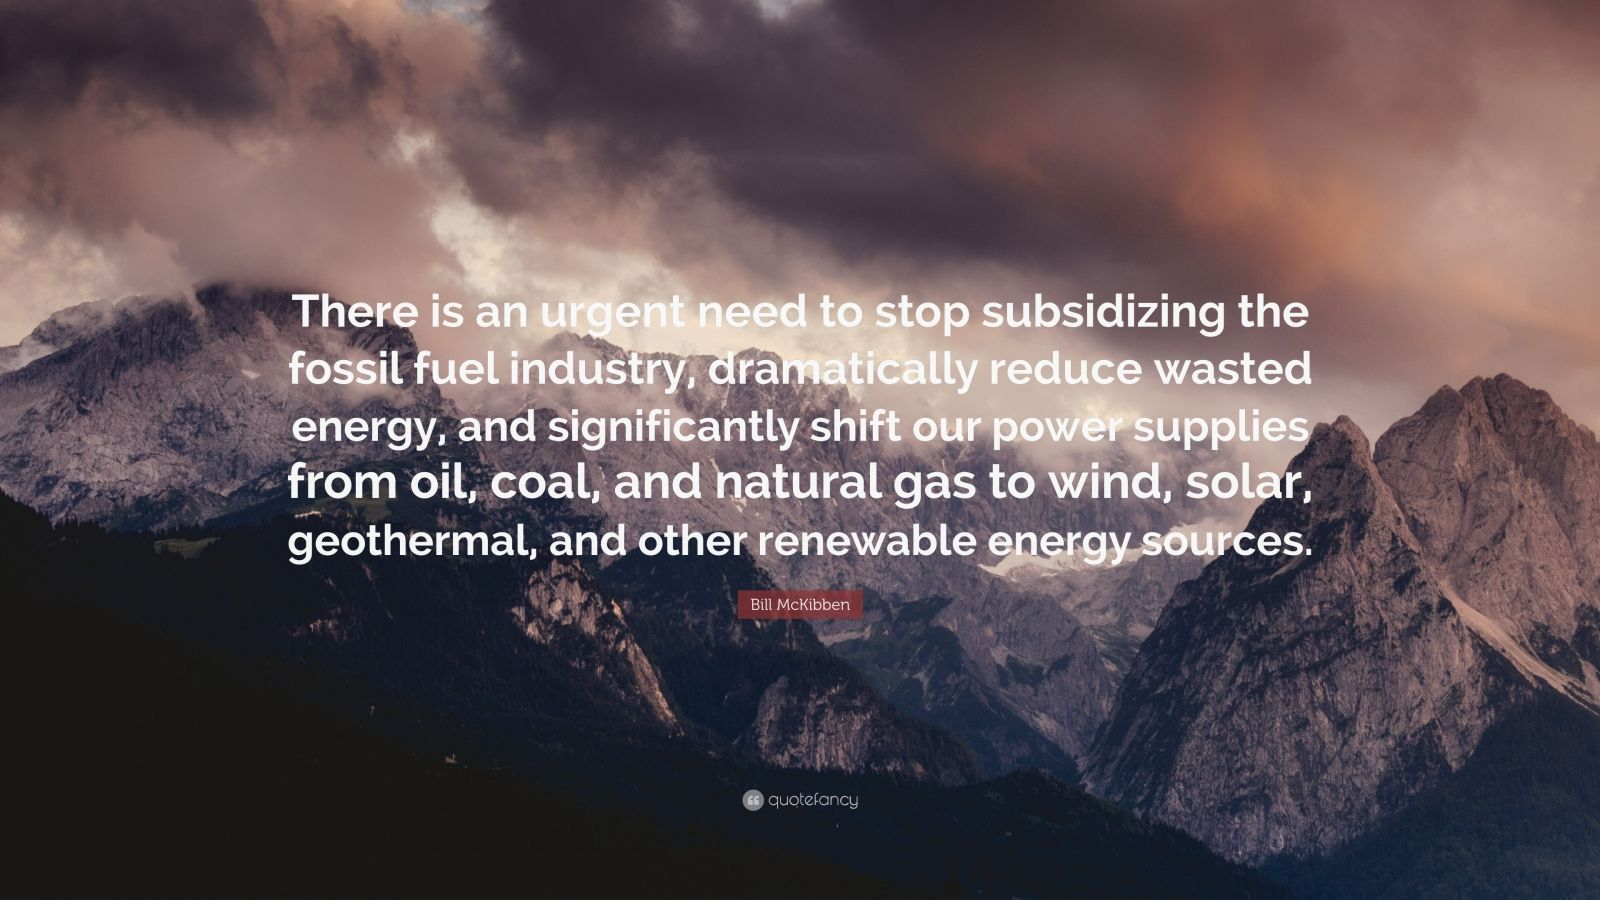 """Bill McKibben Quote: """"There is an urgent need to stop subsidizing the fossil fuel industry, dramatically reduce wasted energy, and significantly shift our power supplies from oil, coal, and natural gas to wind, solar, geothermal, and other renewable energy sources."""""""